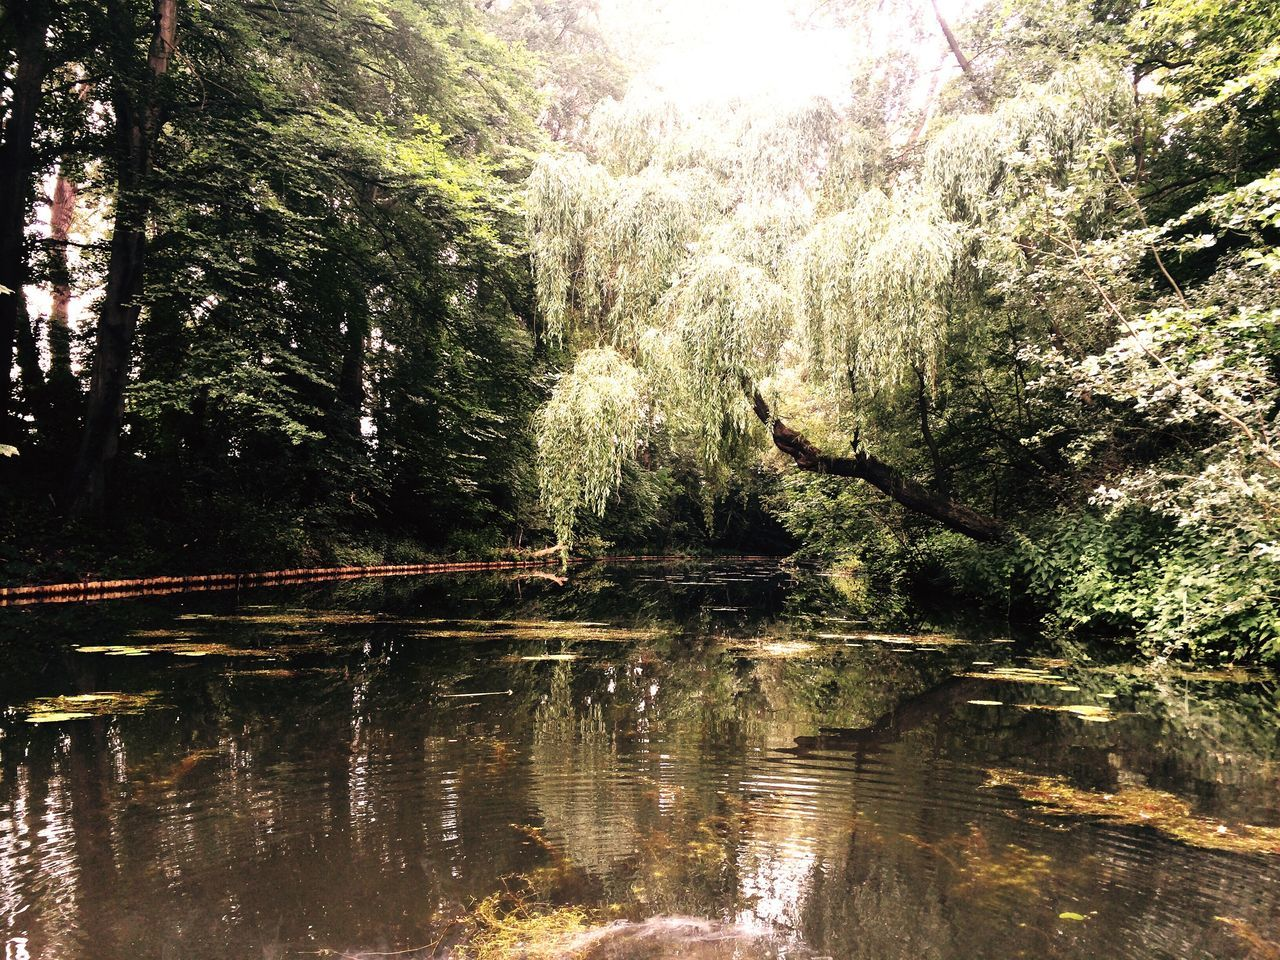 tree, nature, reflection, forest, tranquility, growth, no people, beauty in nature, water, lake, day, scenics, outdoors